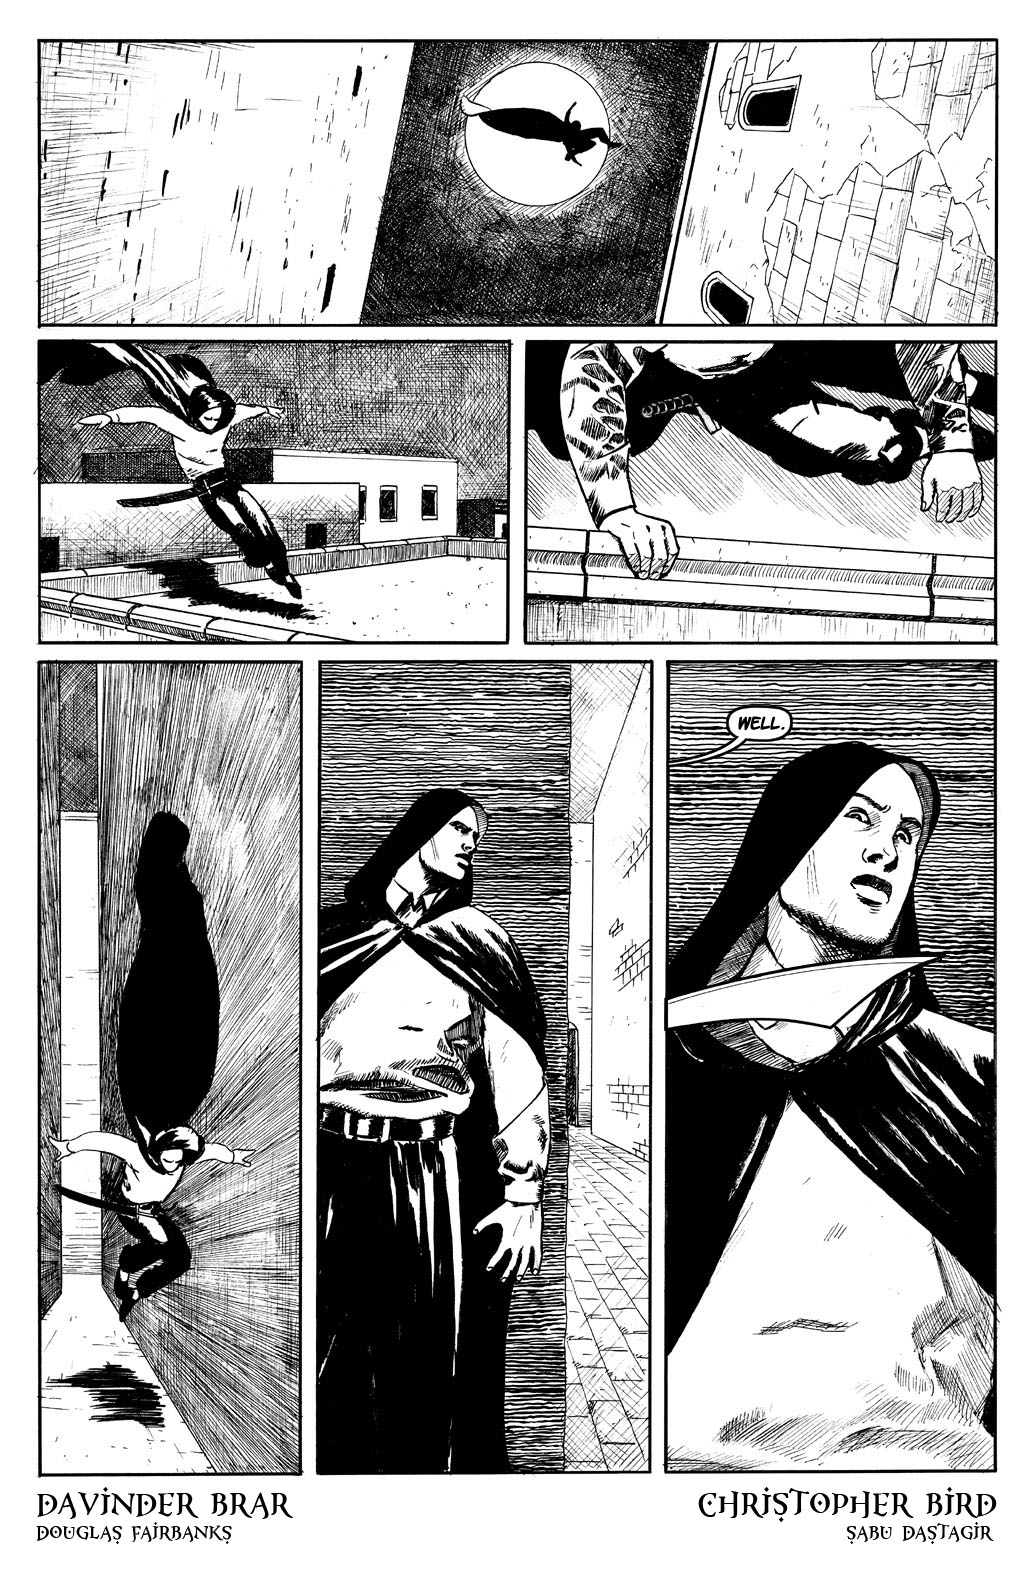 Book 4, page 1